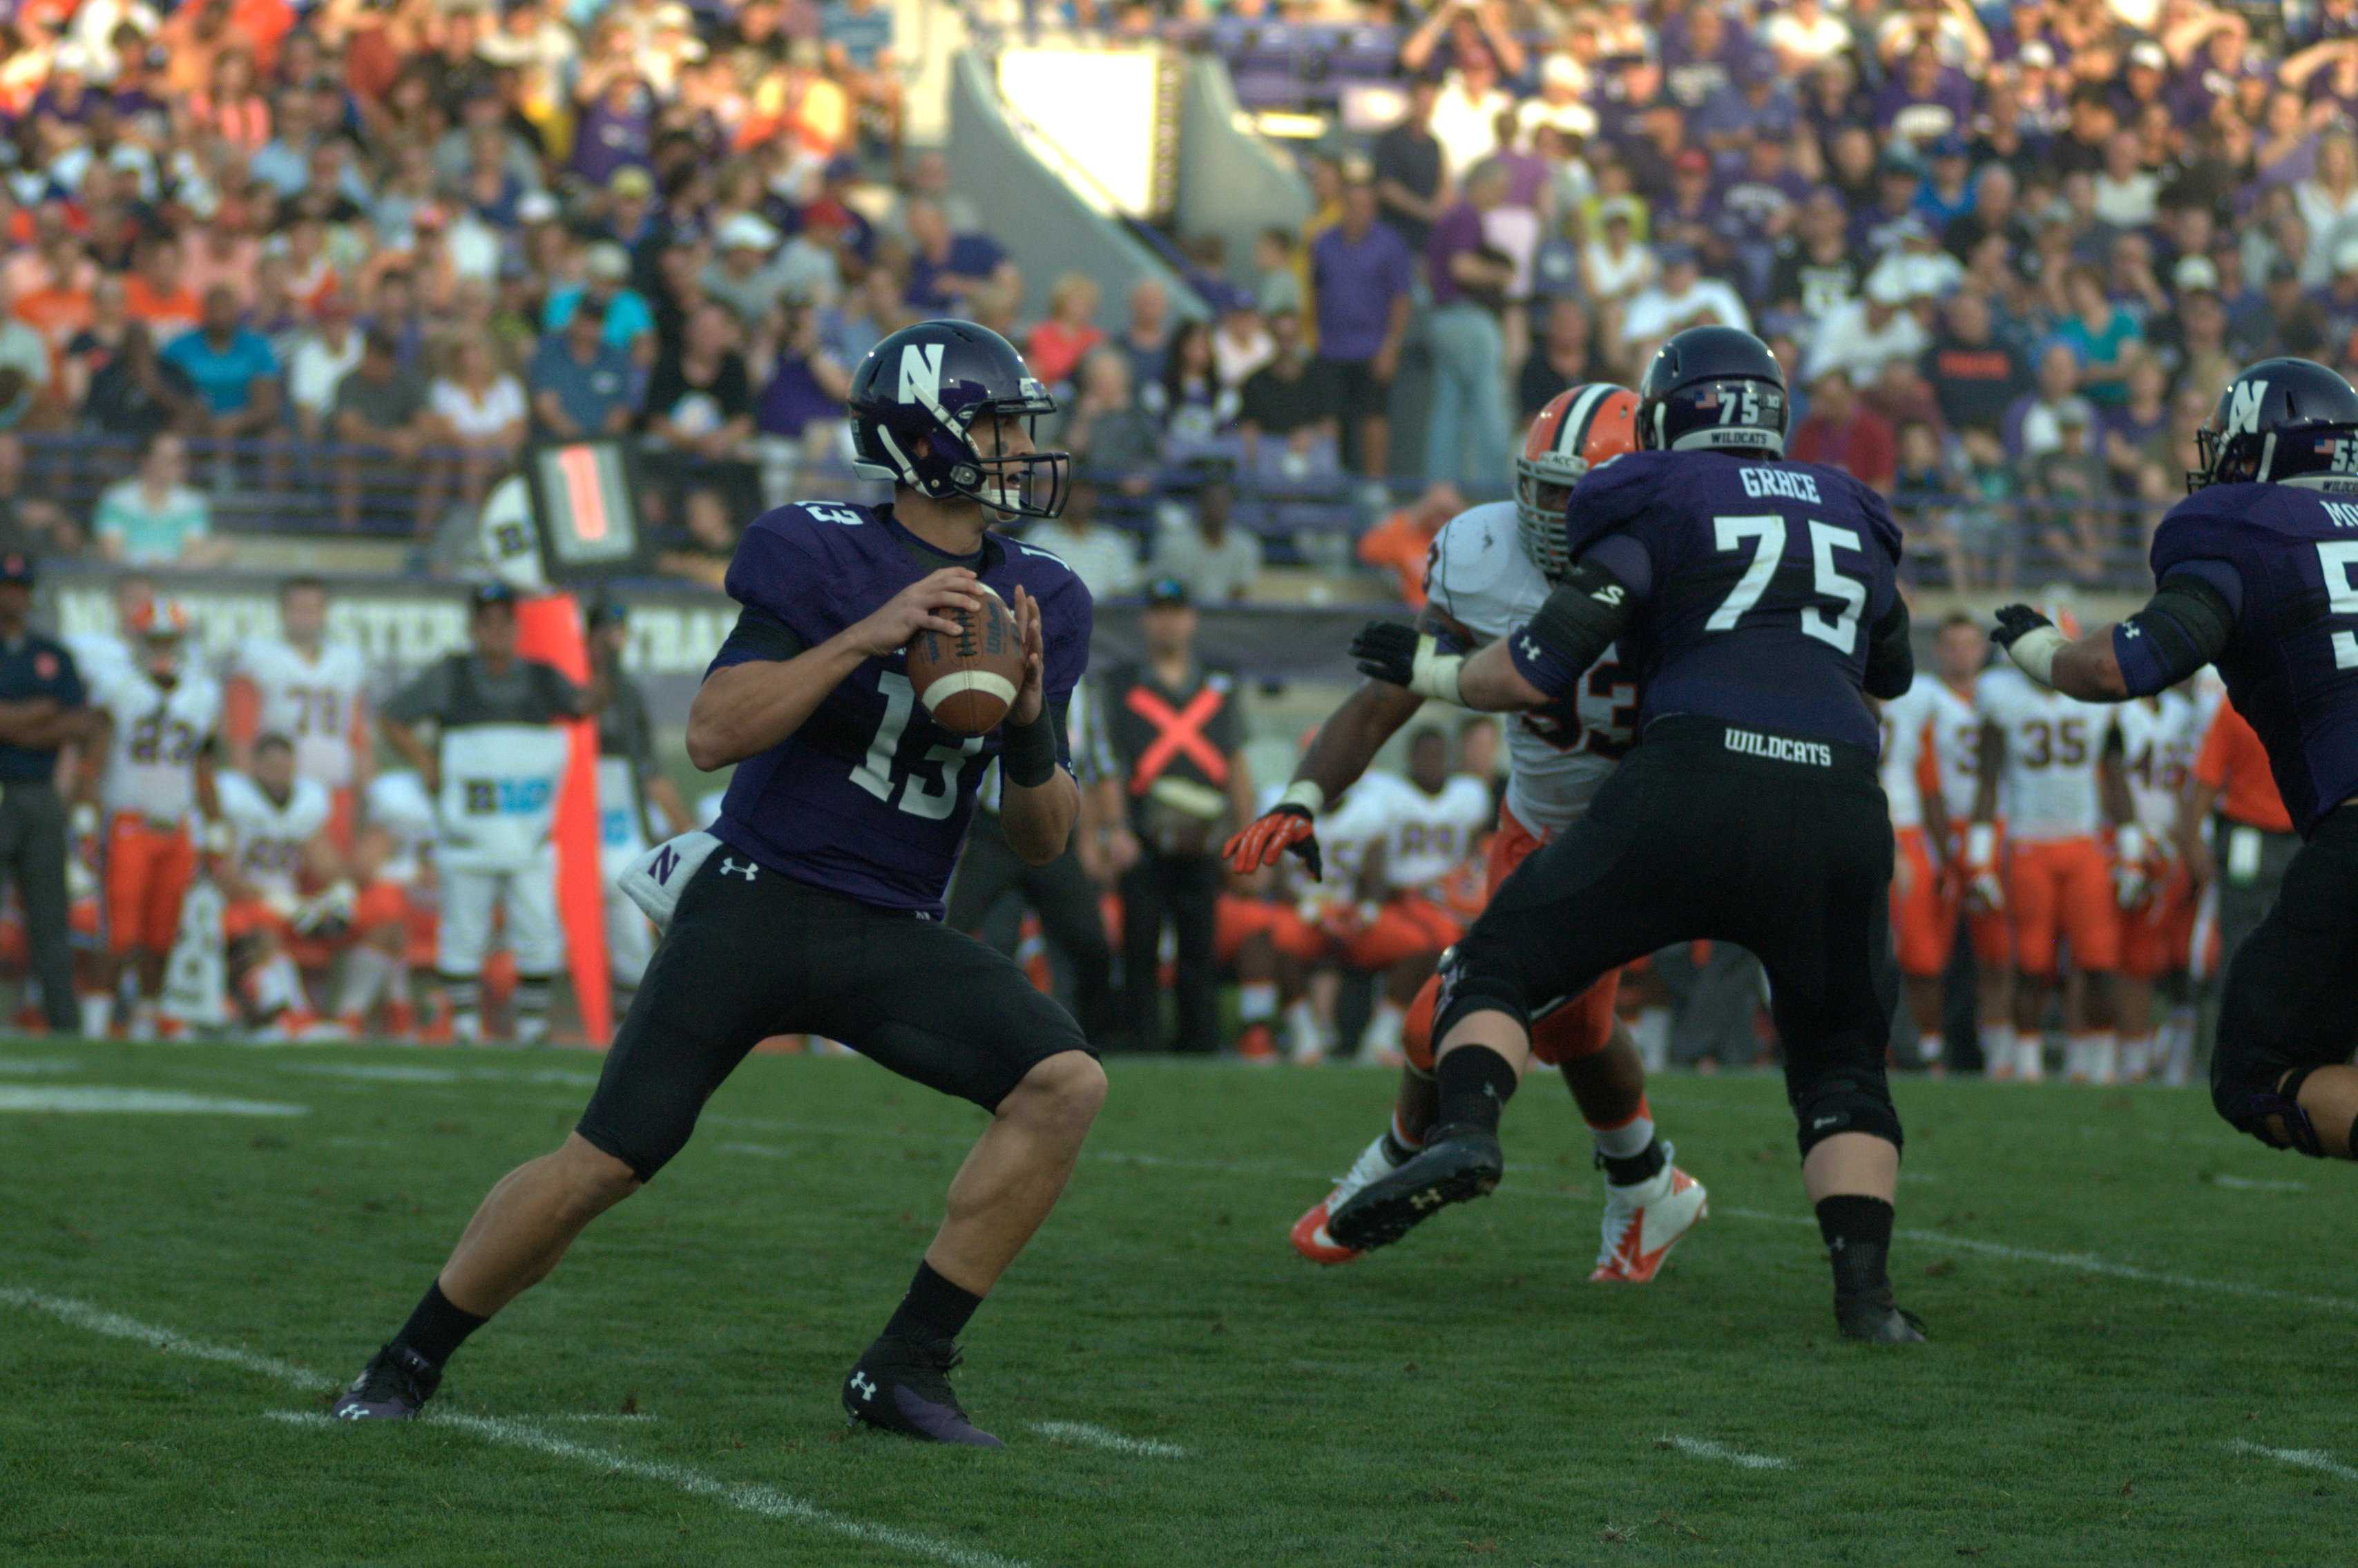 Junior quarterback Trevor Siemian drops back to pass. Siemian combined with senior Kain Colter to throw for 375 yards Saturday.